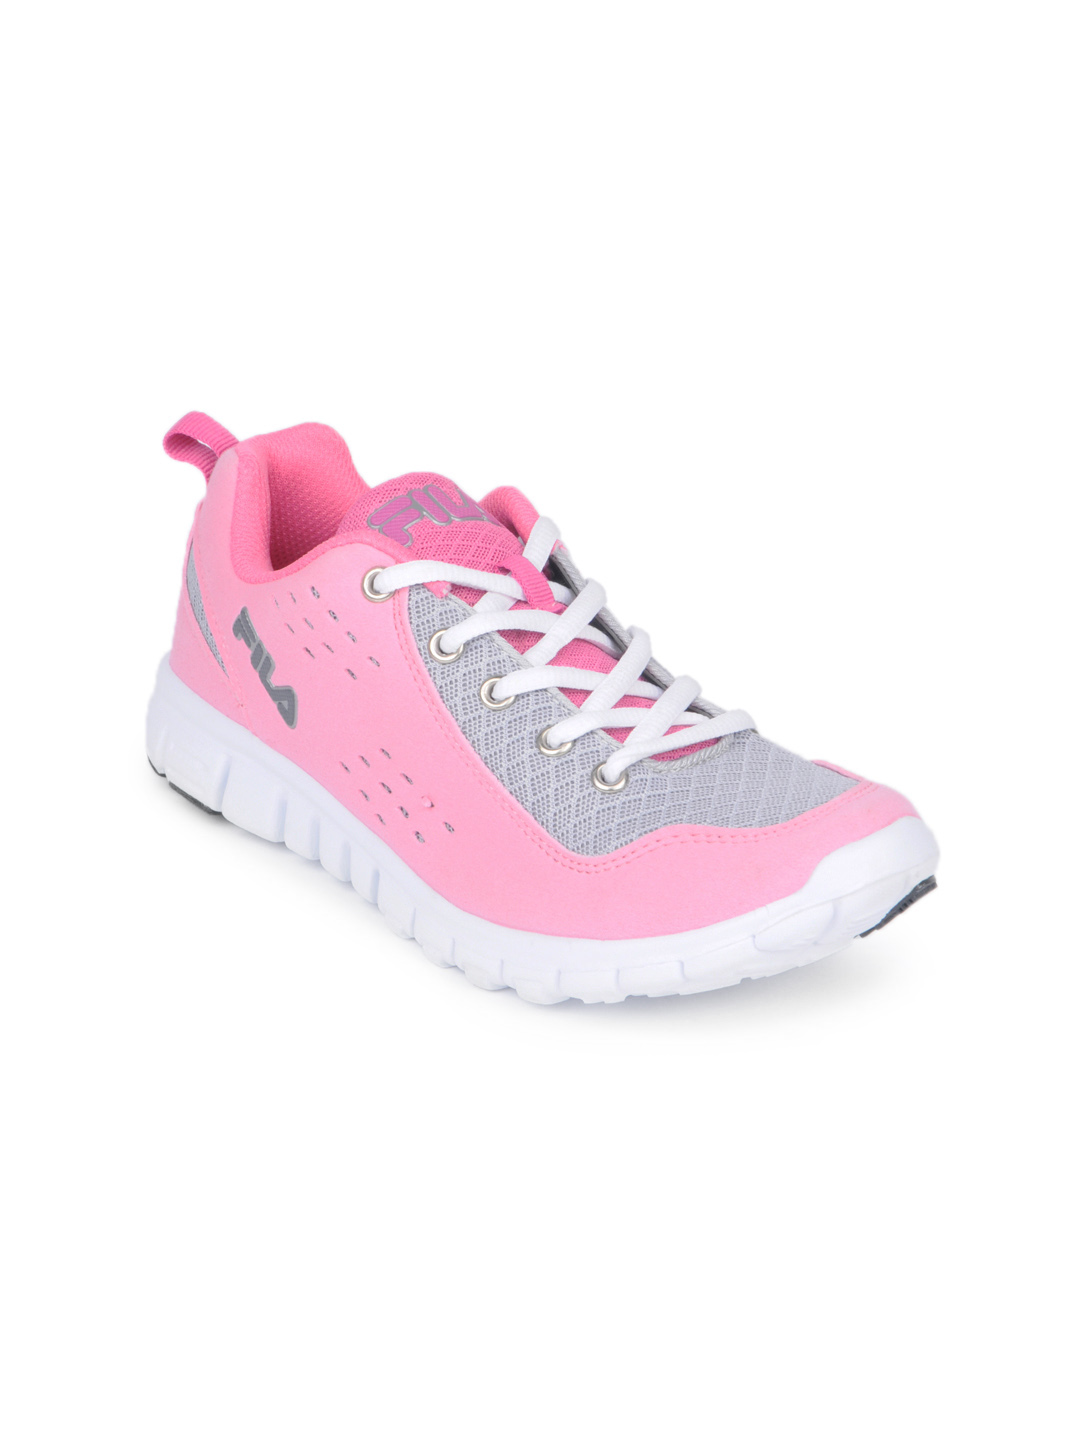 Fila Women Pink Speed Lite Sports Shoes